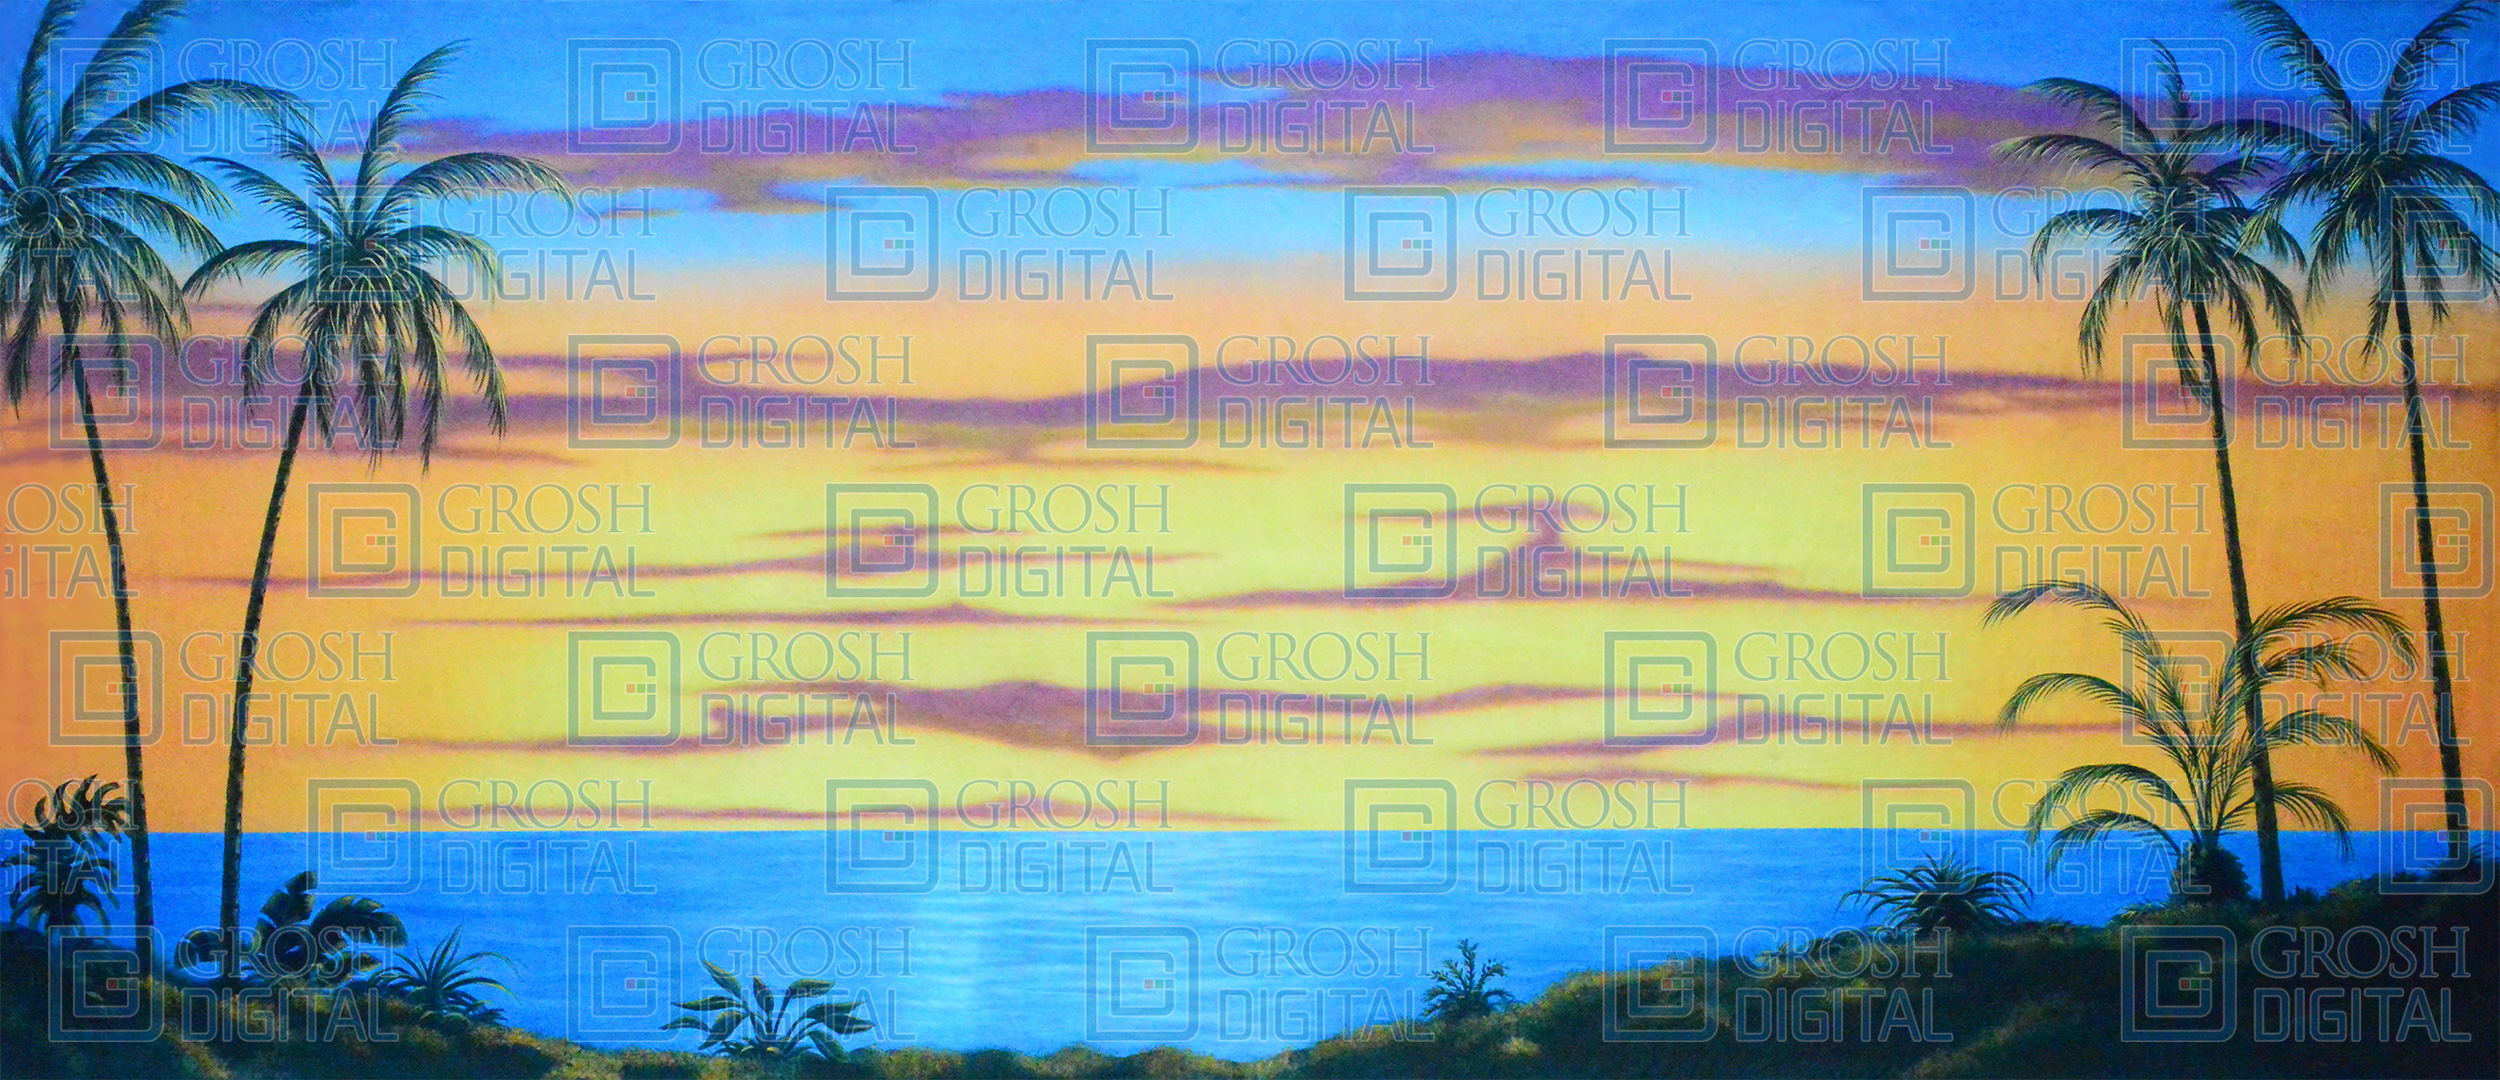 Tropical Beach at Sunset Projected Backdrop for Beach/Tropical, Guys and Dolls, Lion King, Madagascar, Mamma Mia, Moana